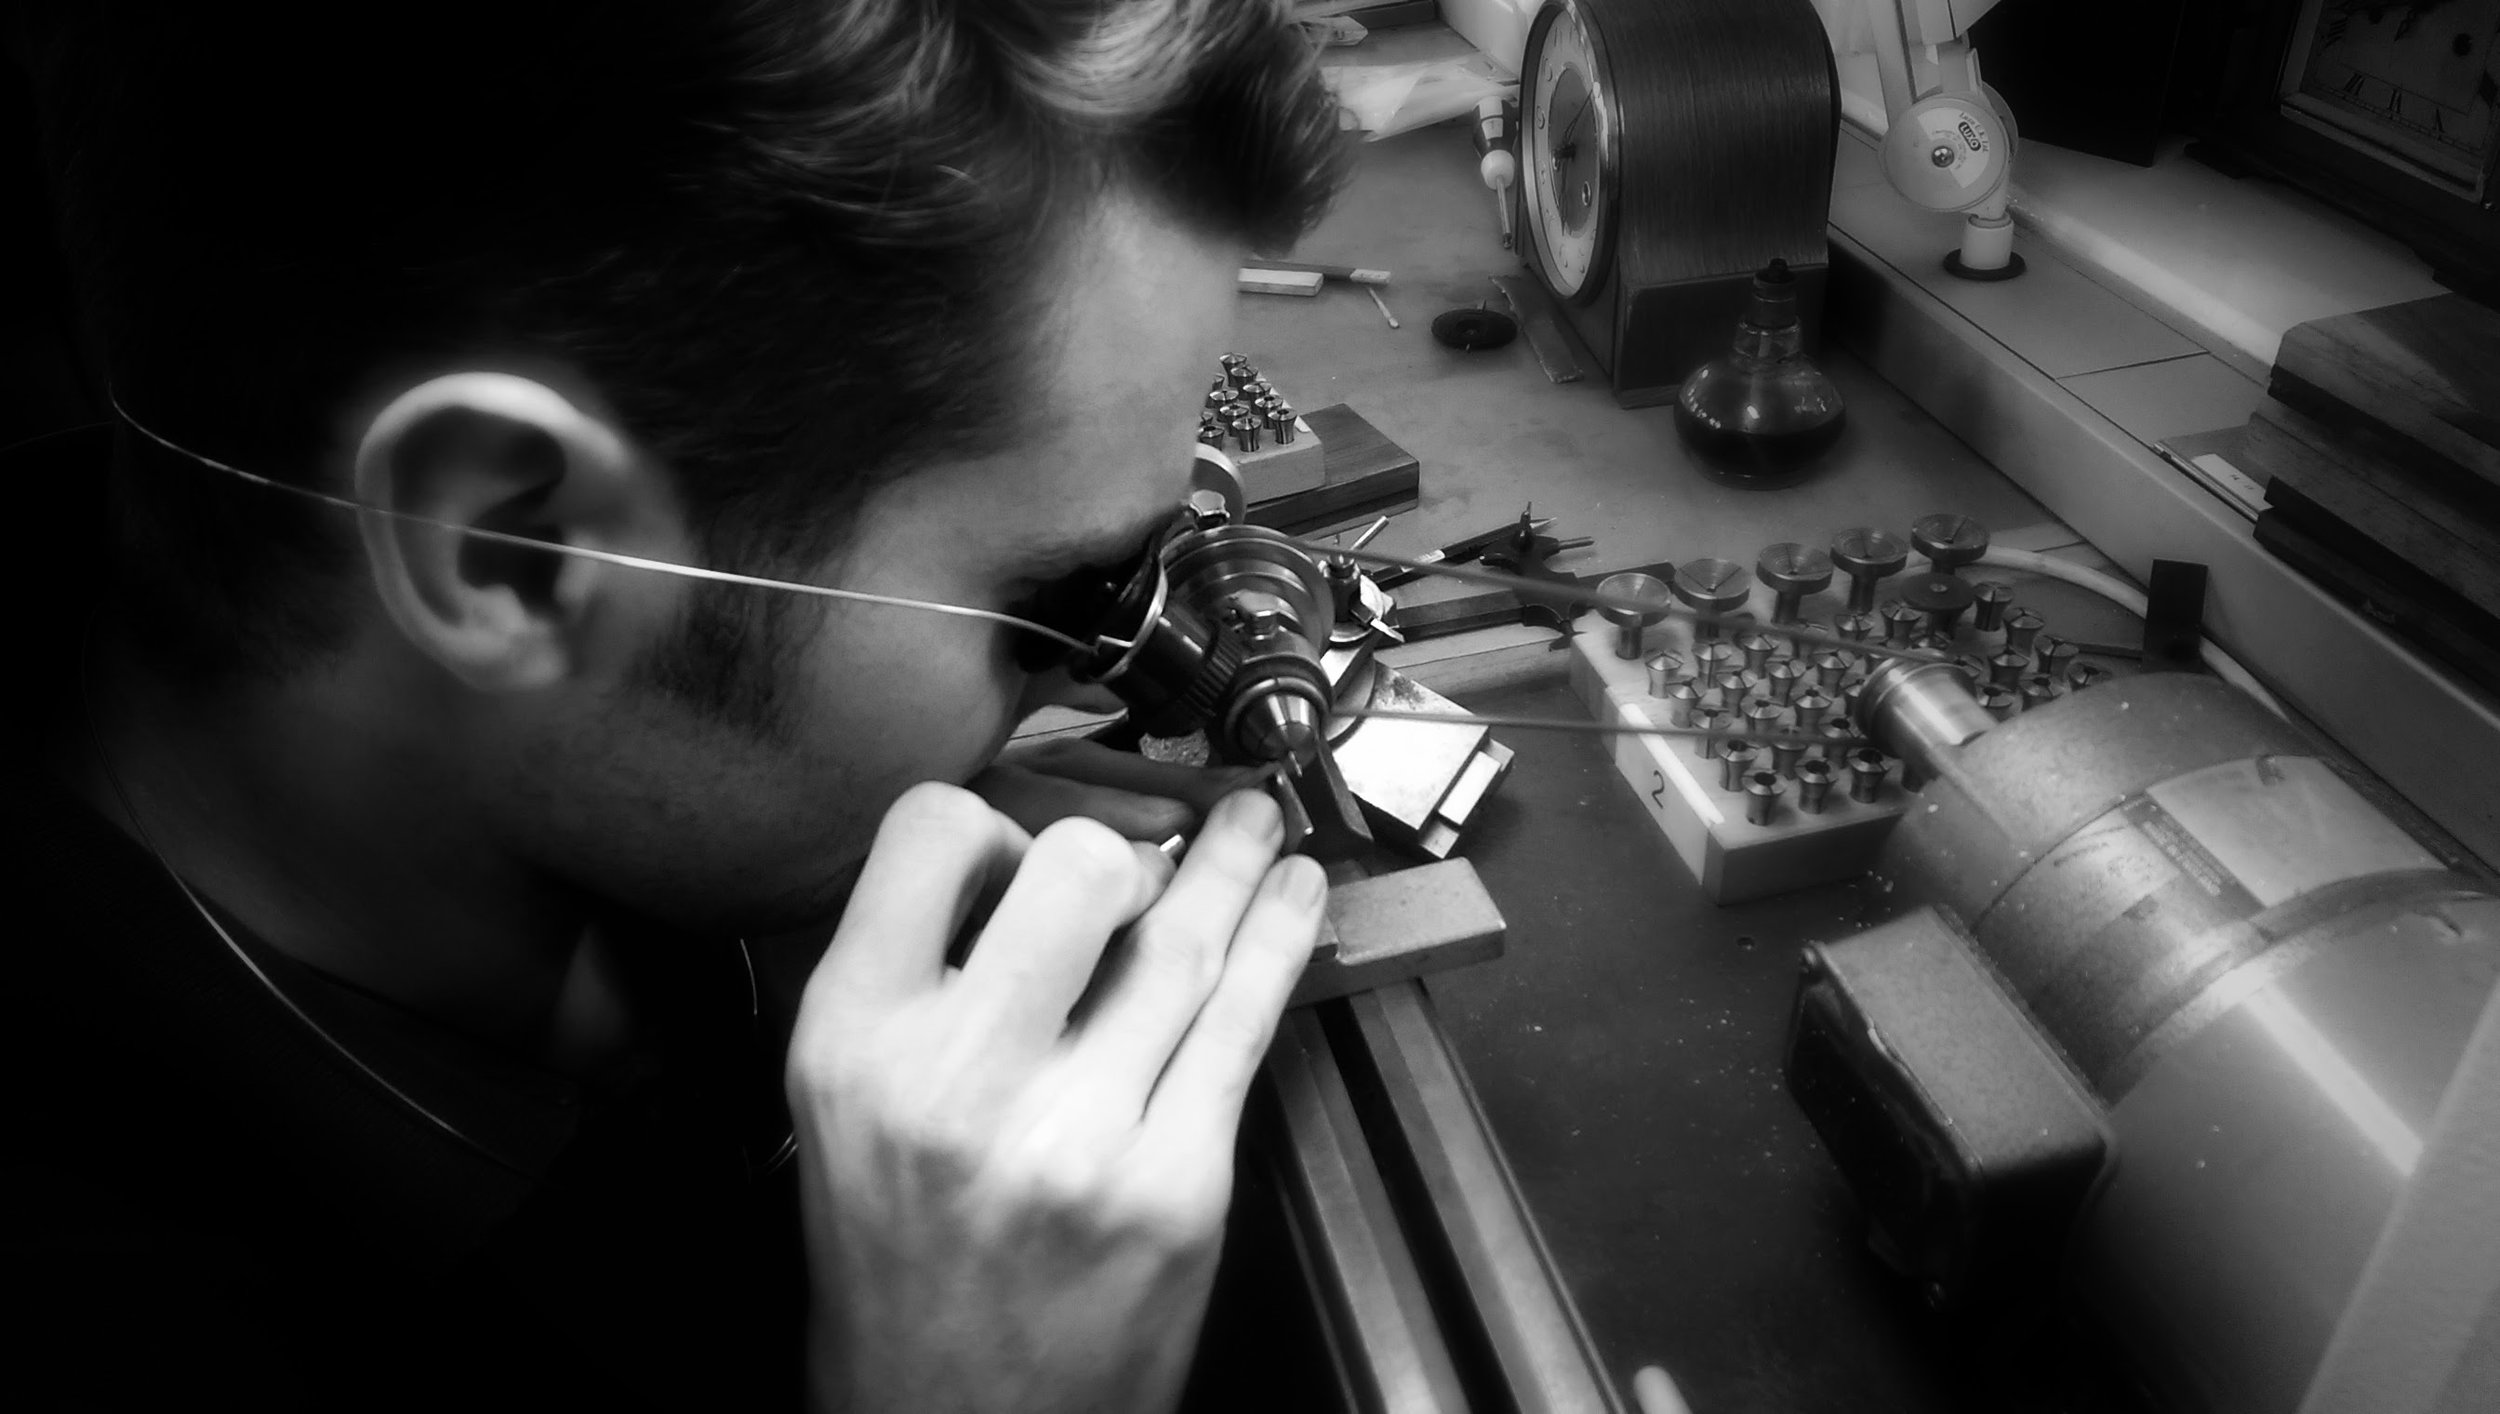 James hard at work on the clock. Photo courtesy of Harris Horology.